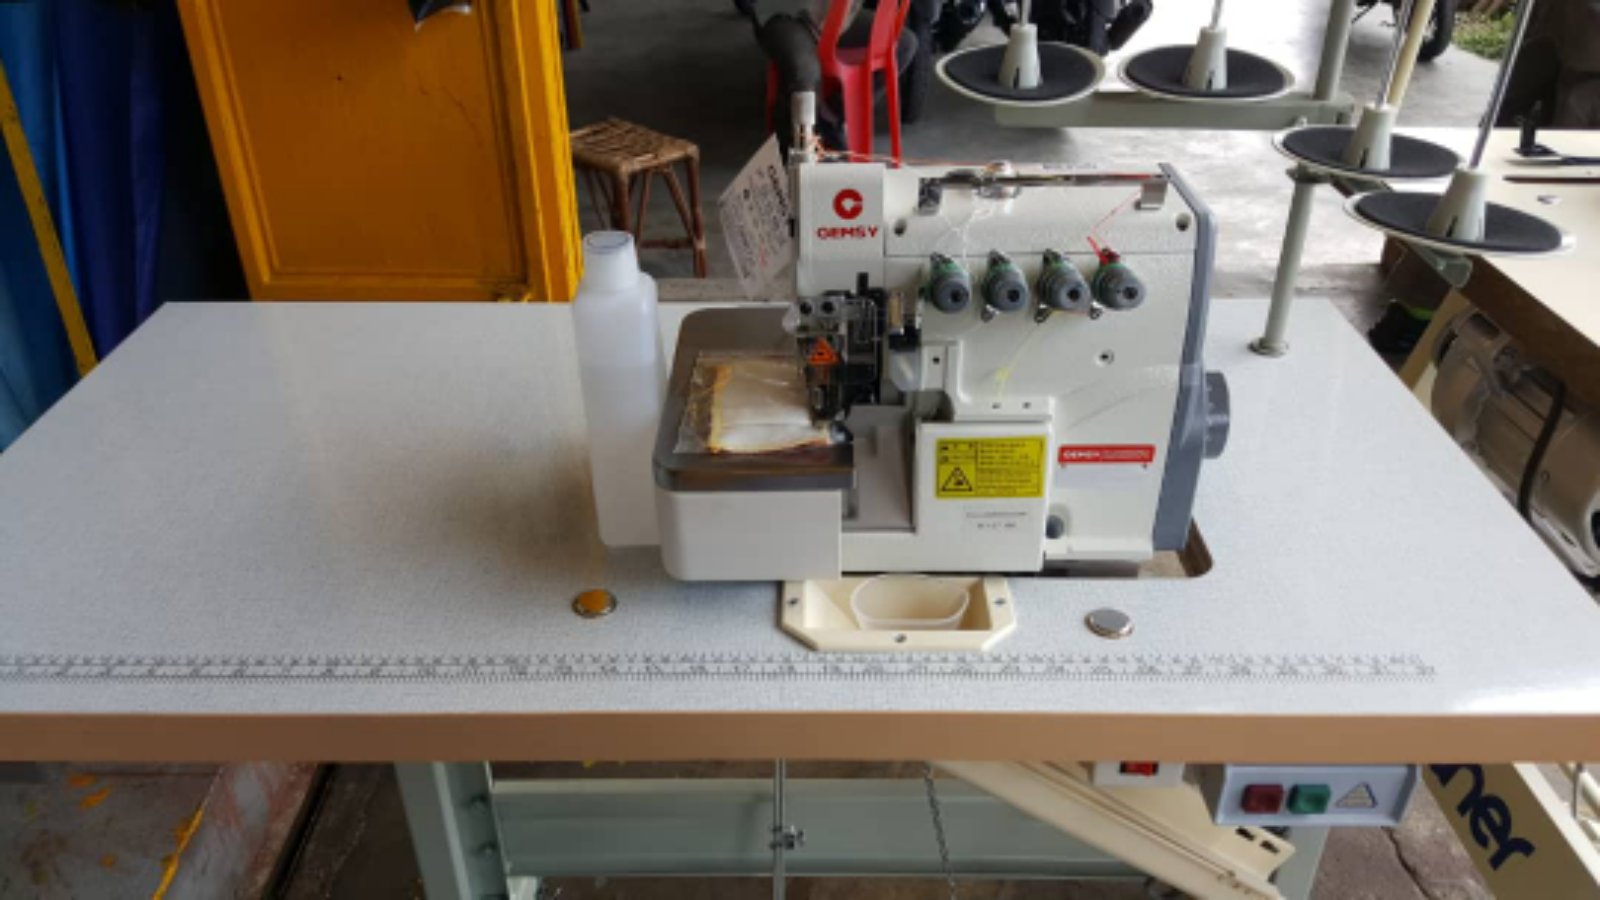 New Gemsy Overlock Sewing Machine